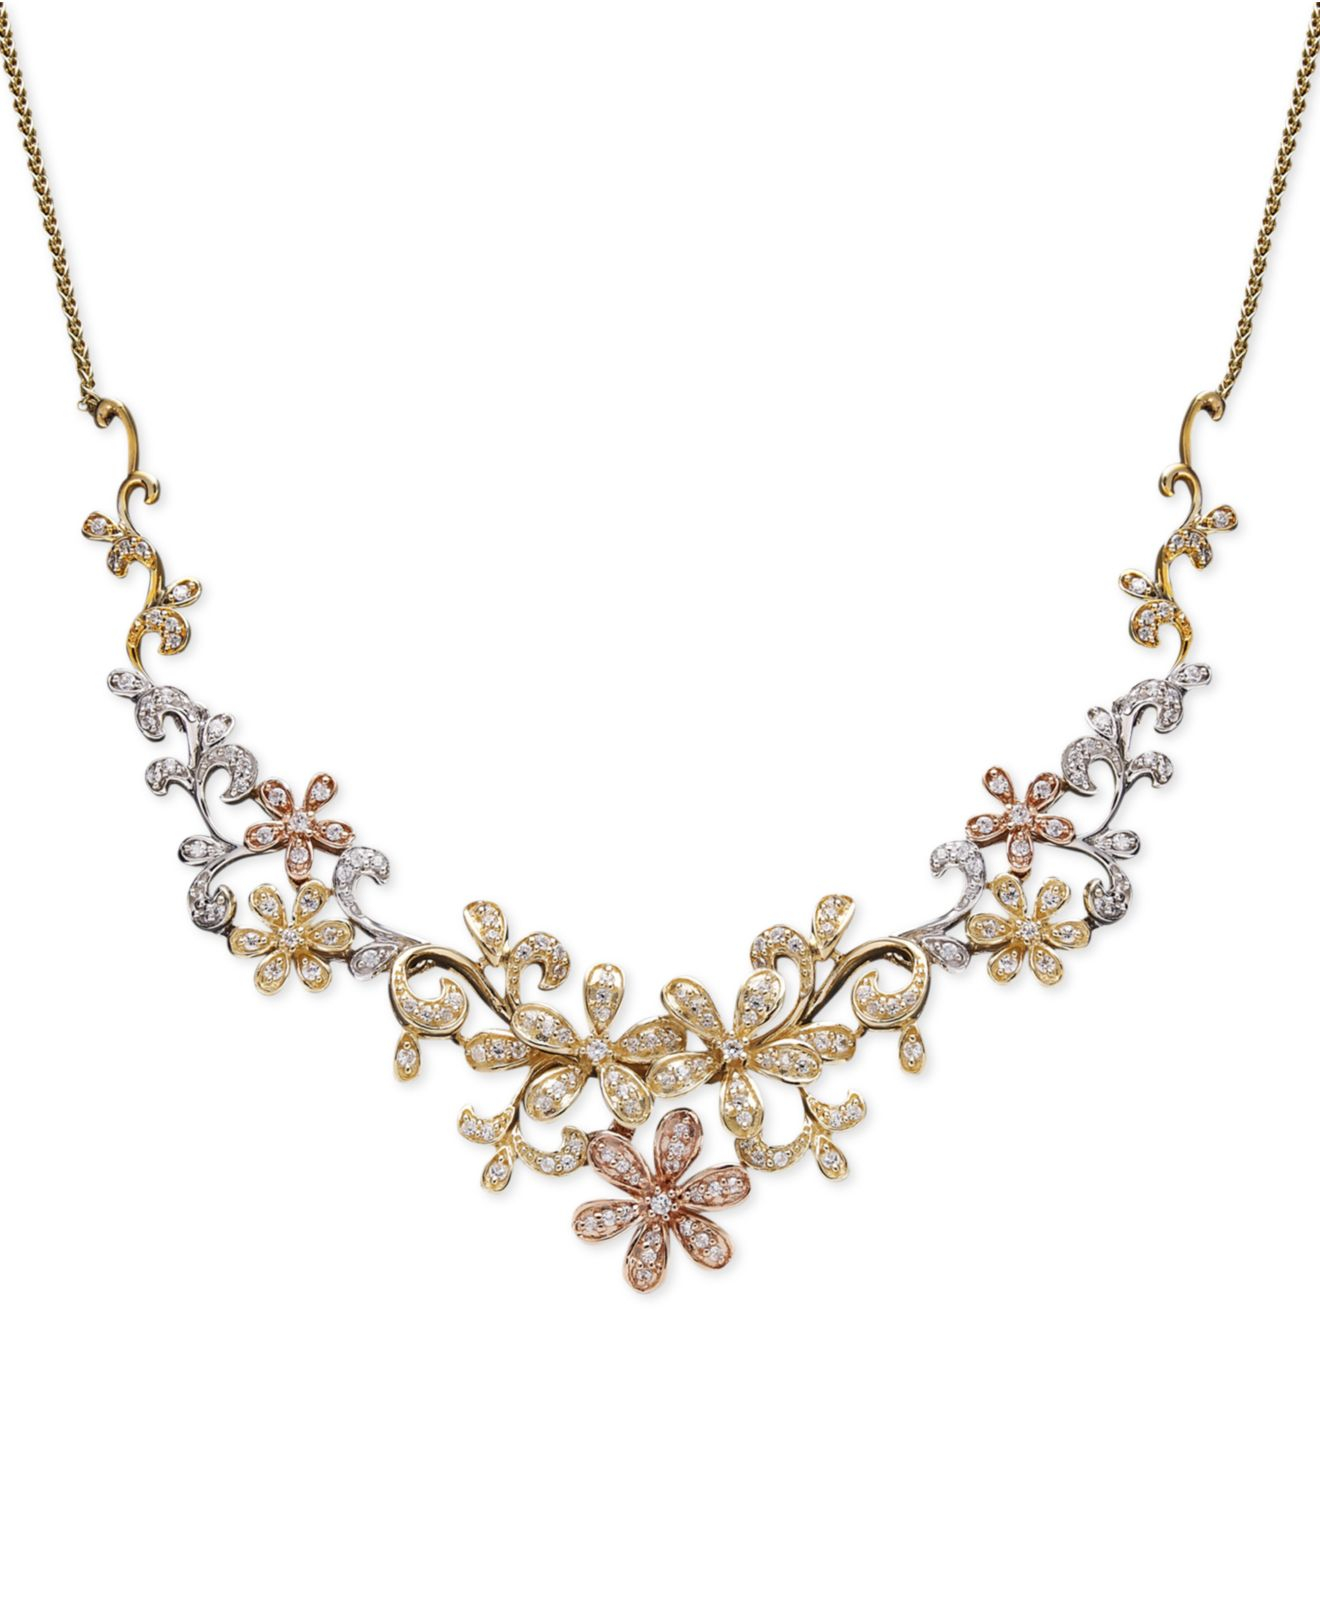 a2fc560d9a467e Macy's Diamond Flower Necklace In Tri-Tone 14K Gold (3/4 Ct. T.W. ...